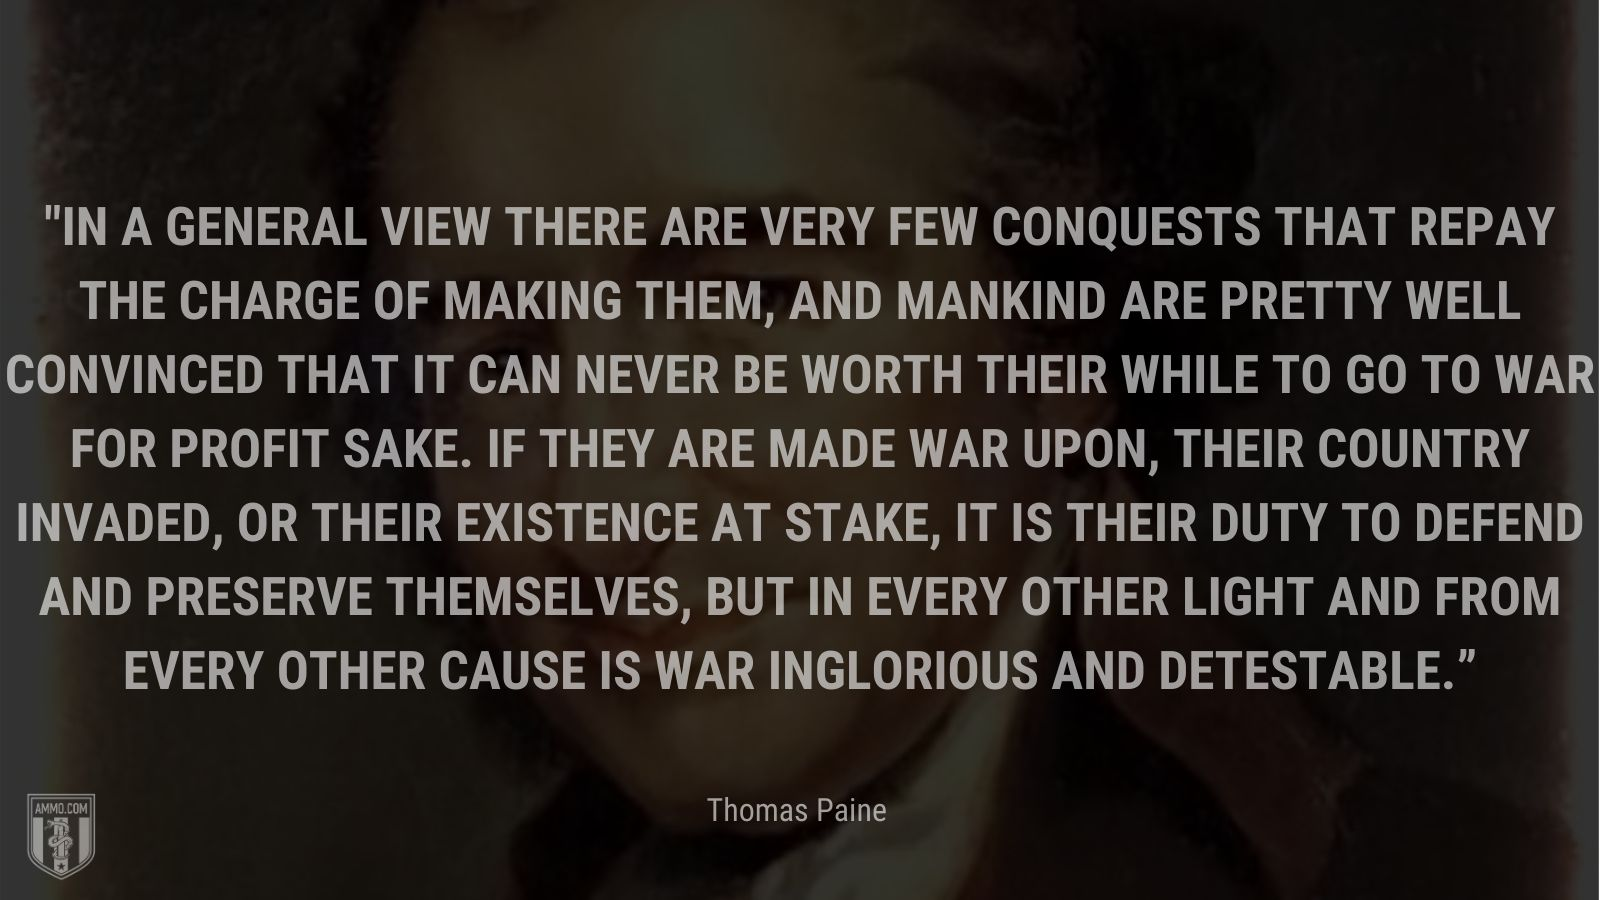 """""""In a general view there are very few conquests that repay the charge of making them, and mankind are pretty well convinced that it can never be worth their while to go to war for profit sake. If they are made war upon, their country invaded, or their existence at stake, it is their duty to defend and preserve themselves, but in every other light and from every other cause is war inglorious and detestable."""" - Thomas Paine"""